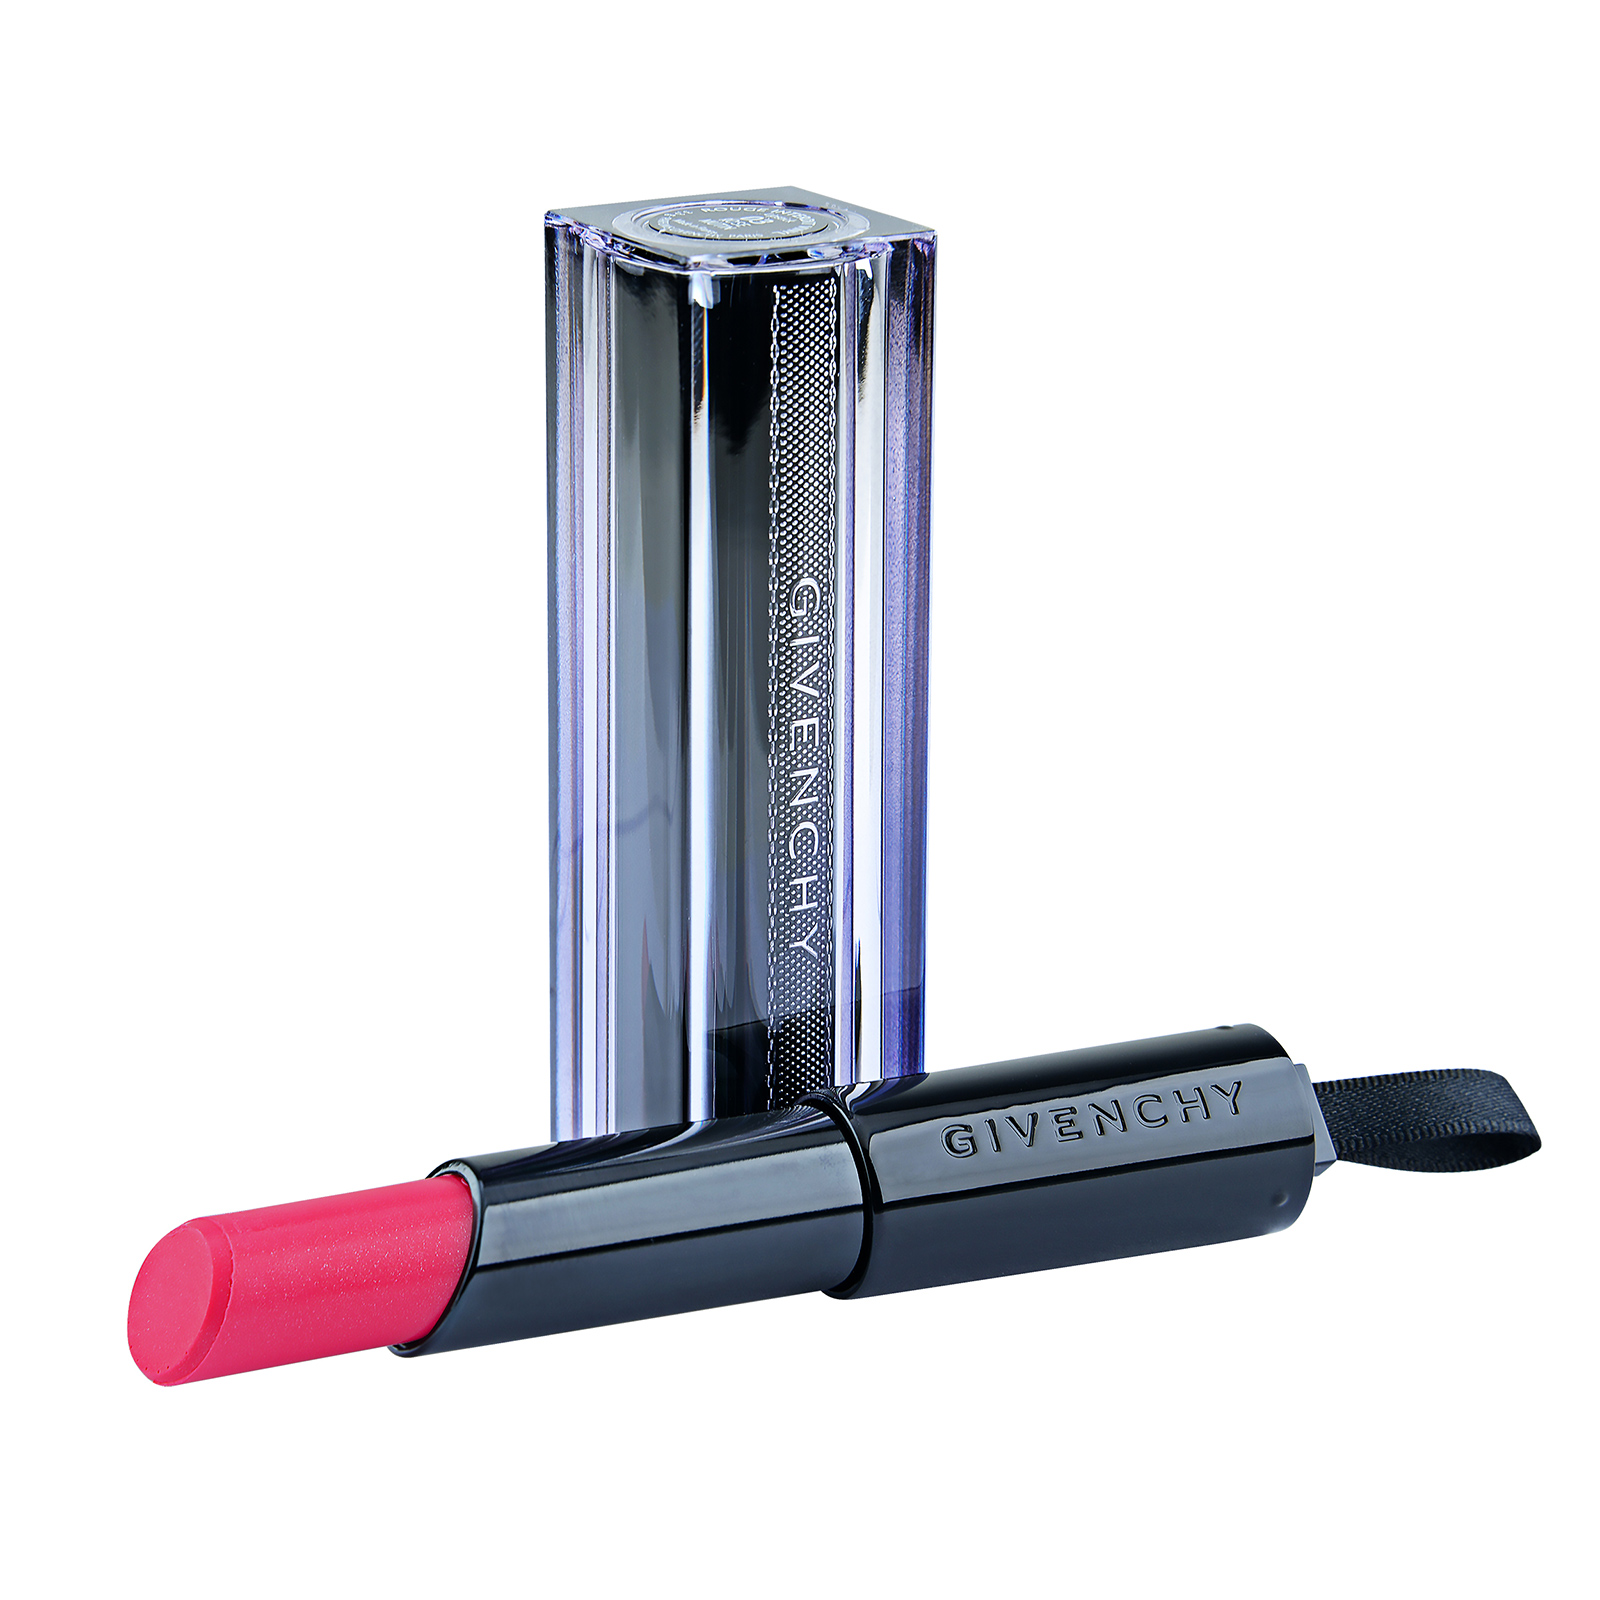 Givenchy  Rouge Interdit Vinyl Extreme Shine Lipstick Illicit Color 06 Rose Sulfureux, 0.11oz, 3.3g (All Products)